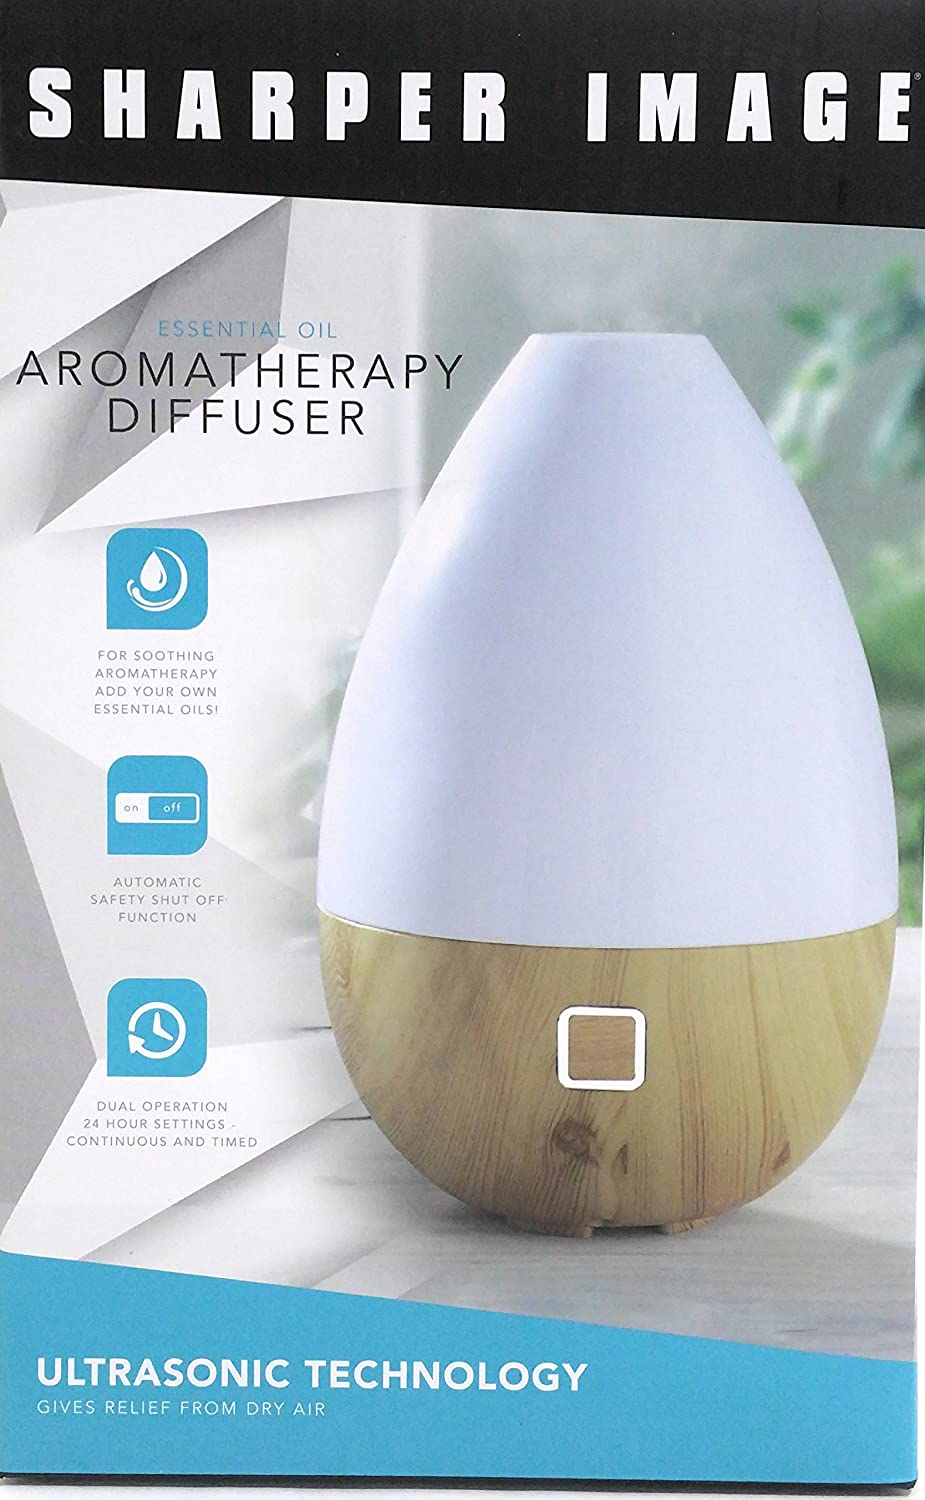 Amazoncom Sharper Image Essential Oil Aromatherapy Diffuser Beauty